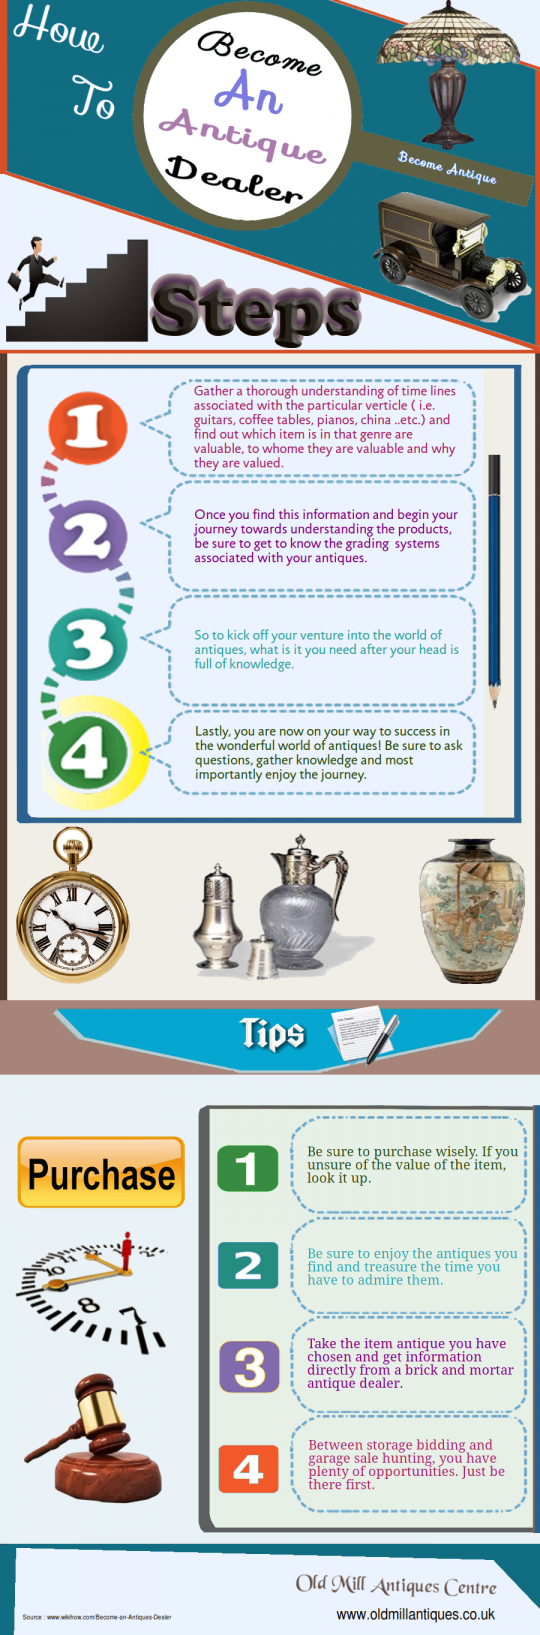 How To Become An Antique Dealer